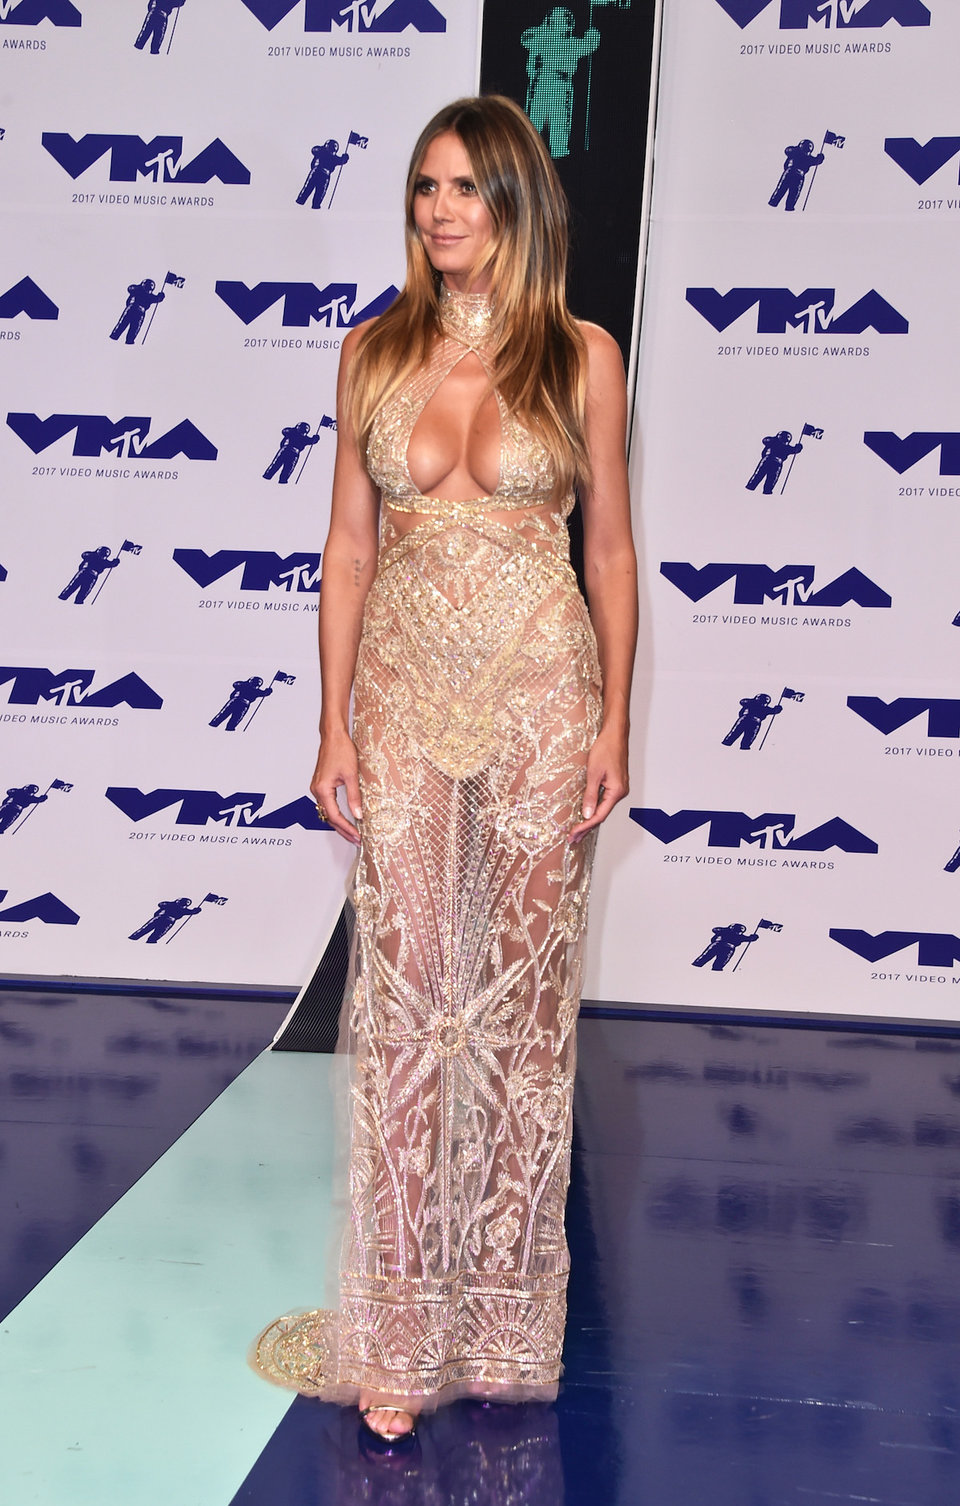 in 2017 heidi klum chose a semi sheer golden dress for her vmas outfit the fabric is so see through that in places it looks like it features cut out details